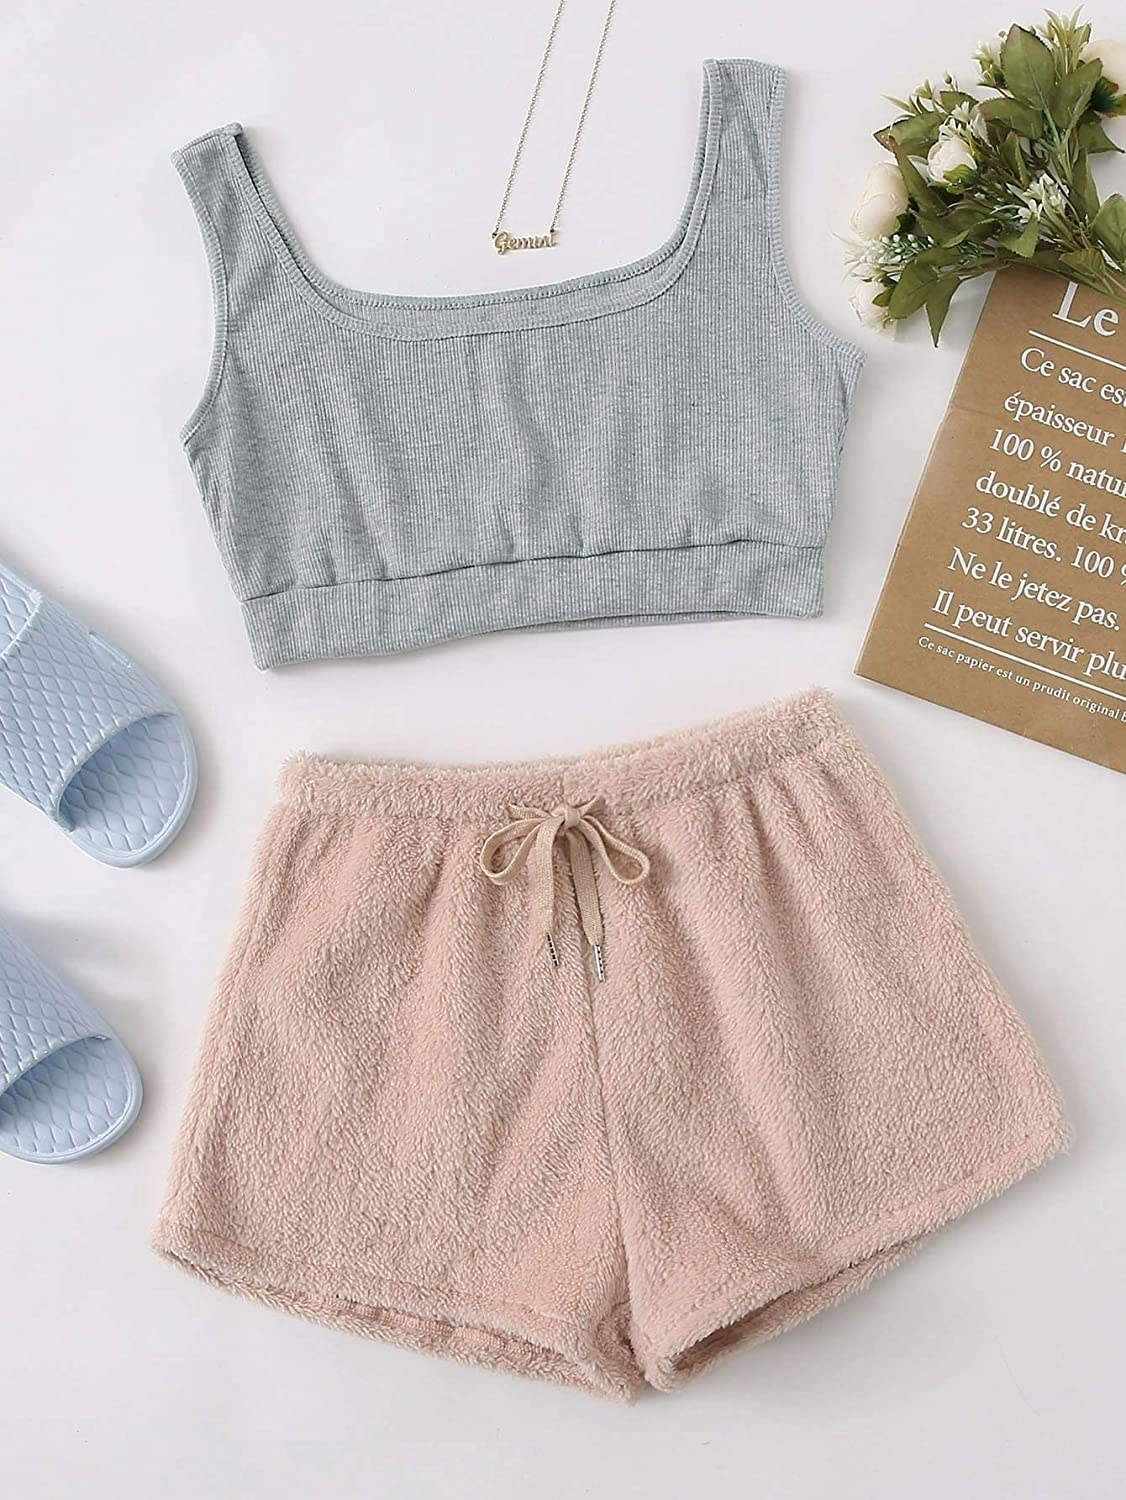 the gray top and pink bottoms